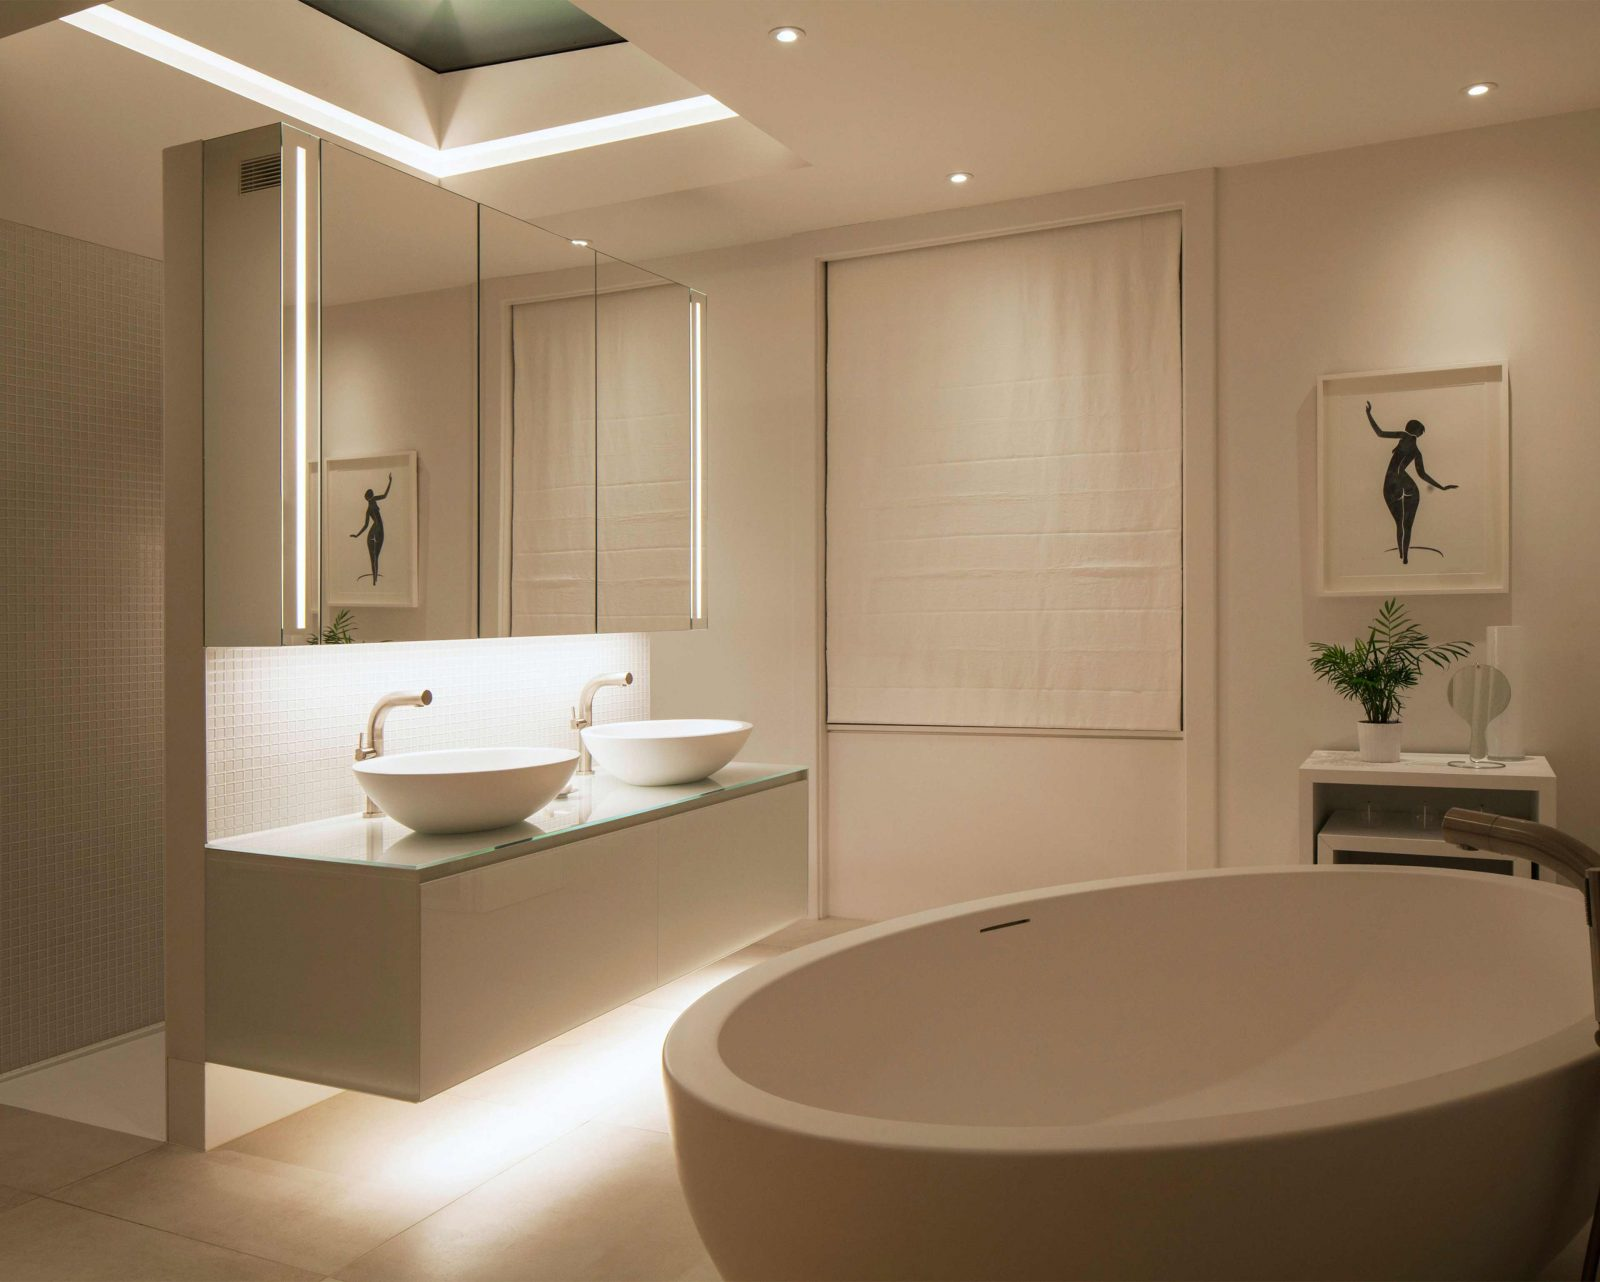 Architectural Lighting Design House Bathroom Skylight Consultants Studio N